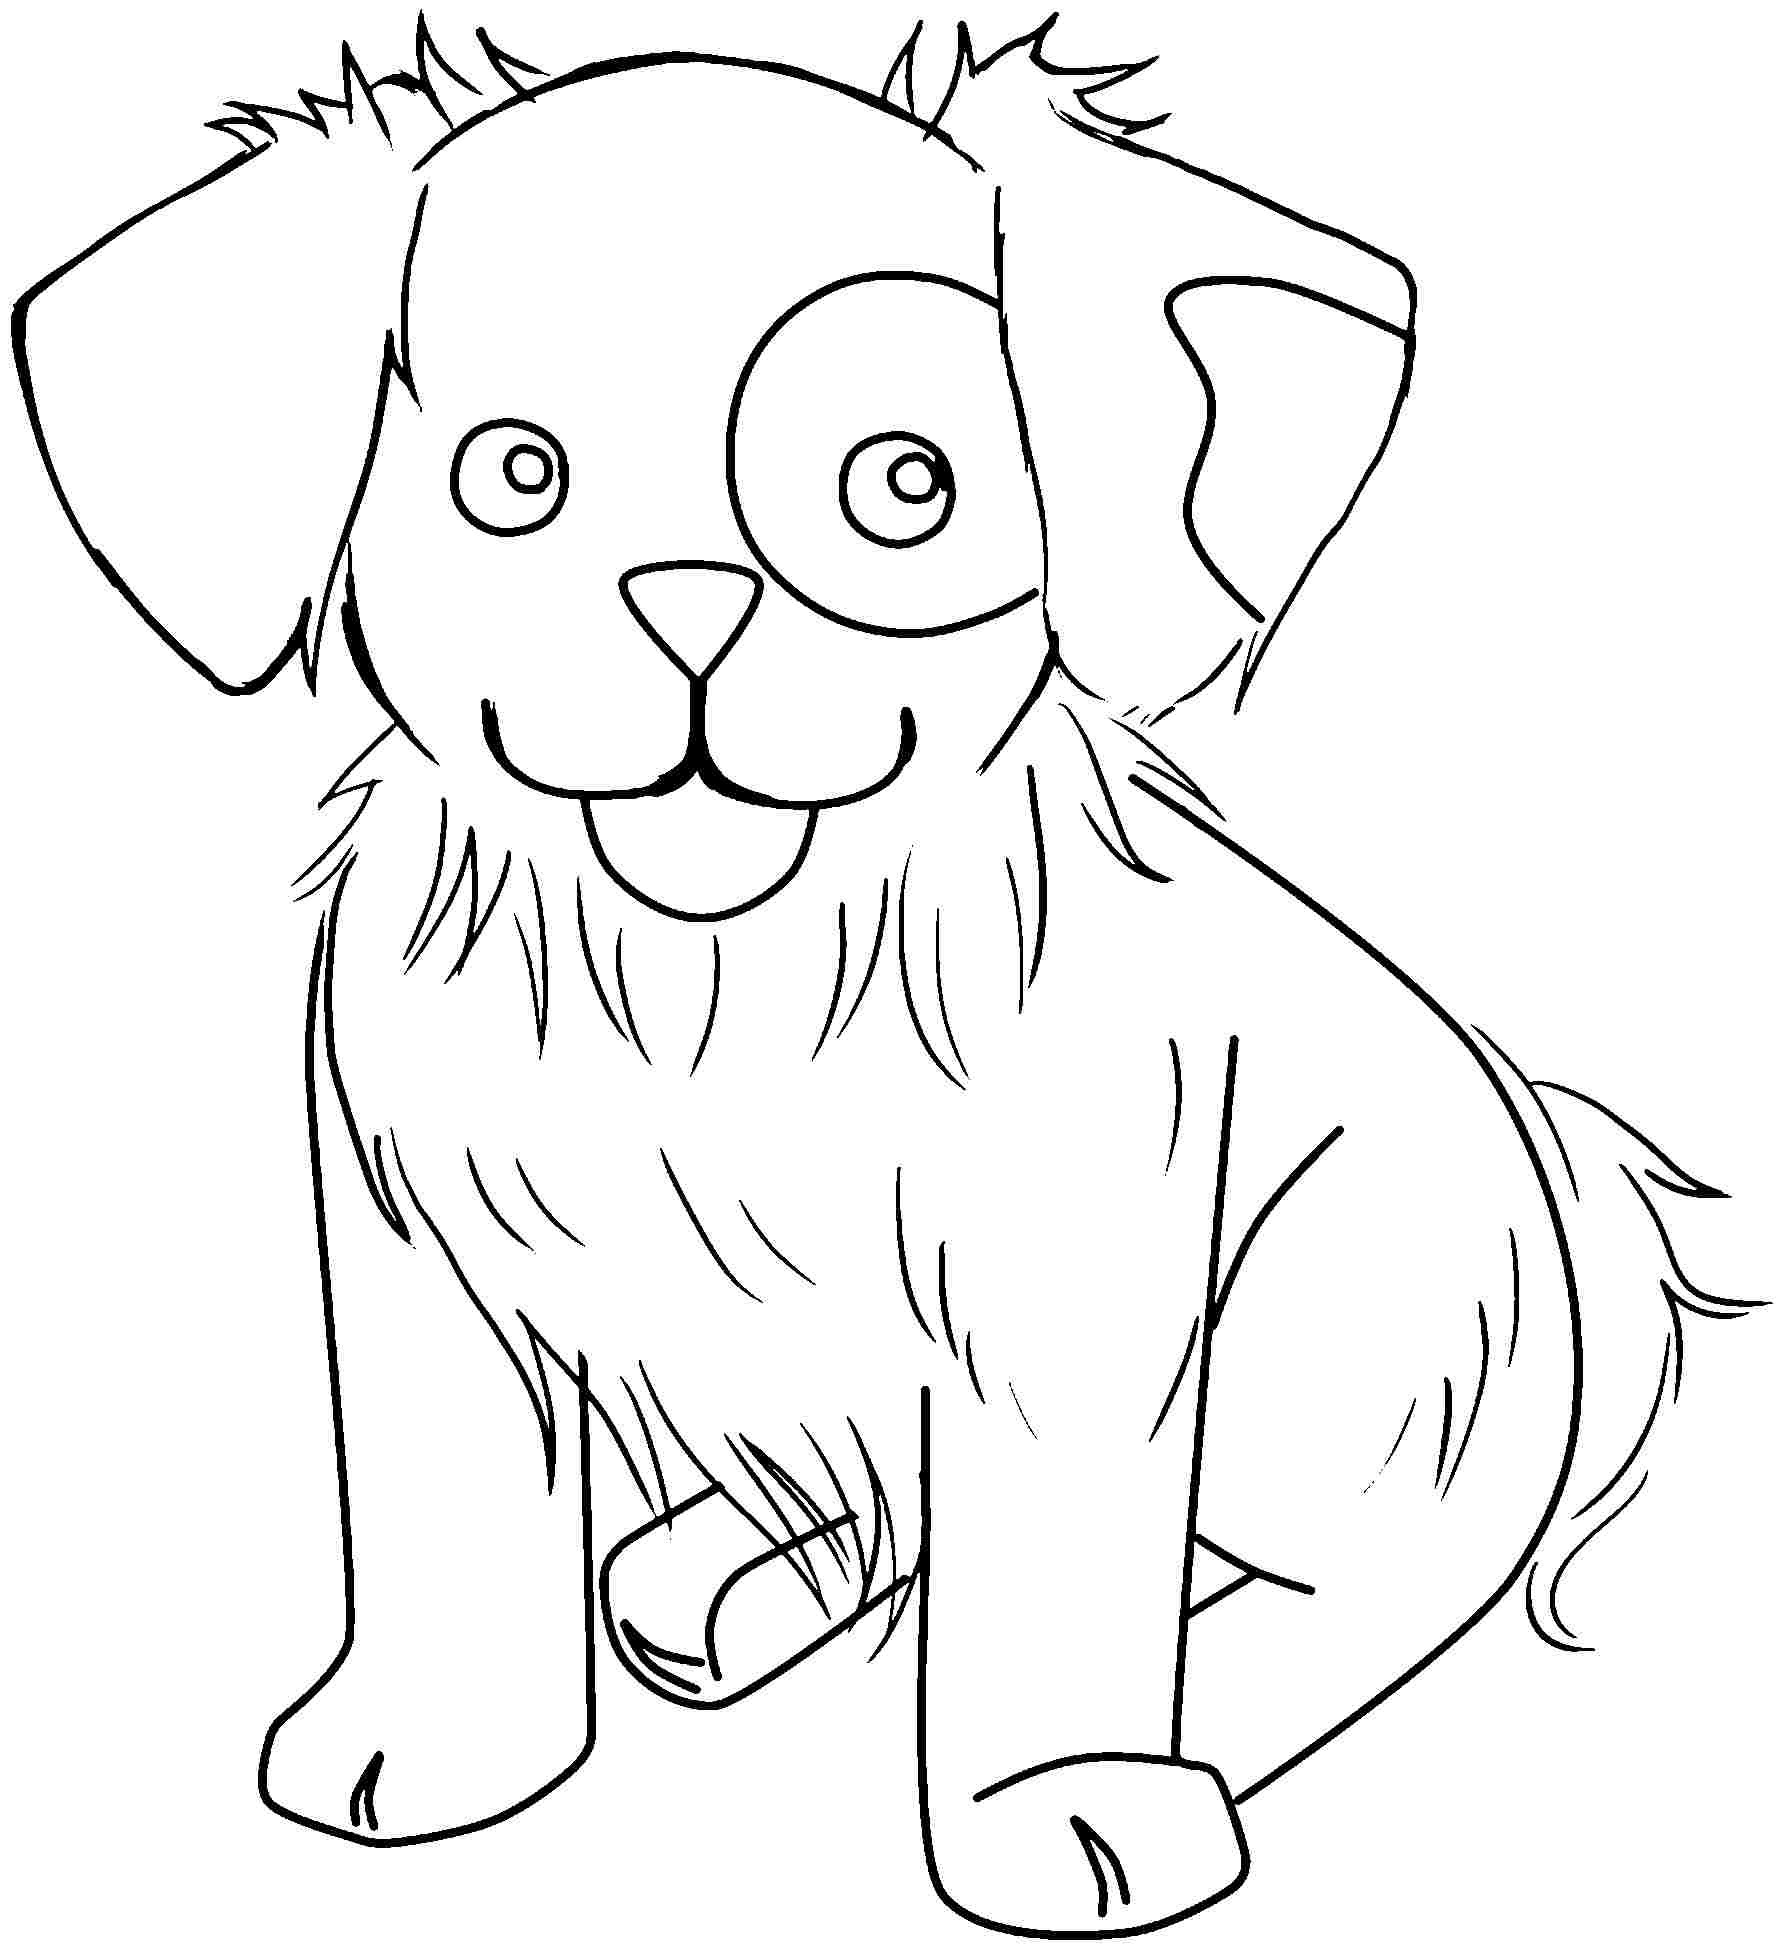 Best ideas about Animal Free Printable Coloring Sheets . Save or Pin Free Printable Cute Animal Coloring Pages Coloring Home Now.